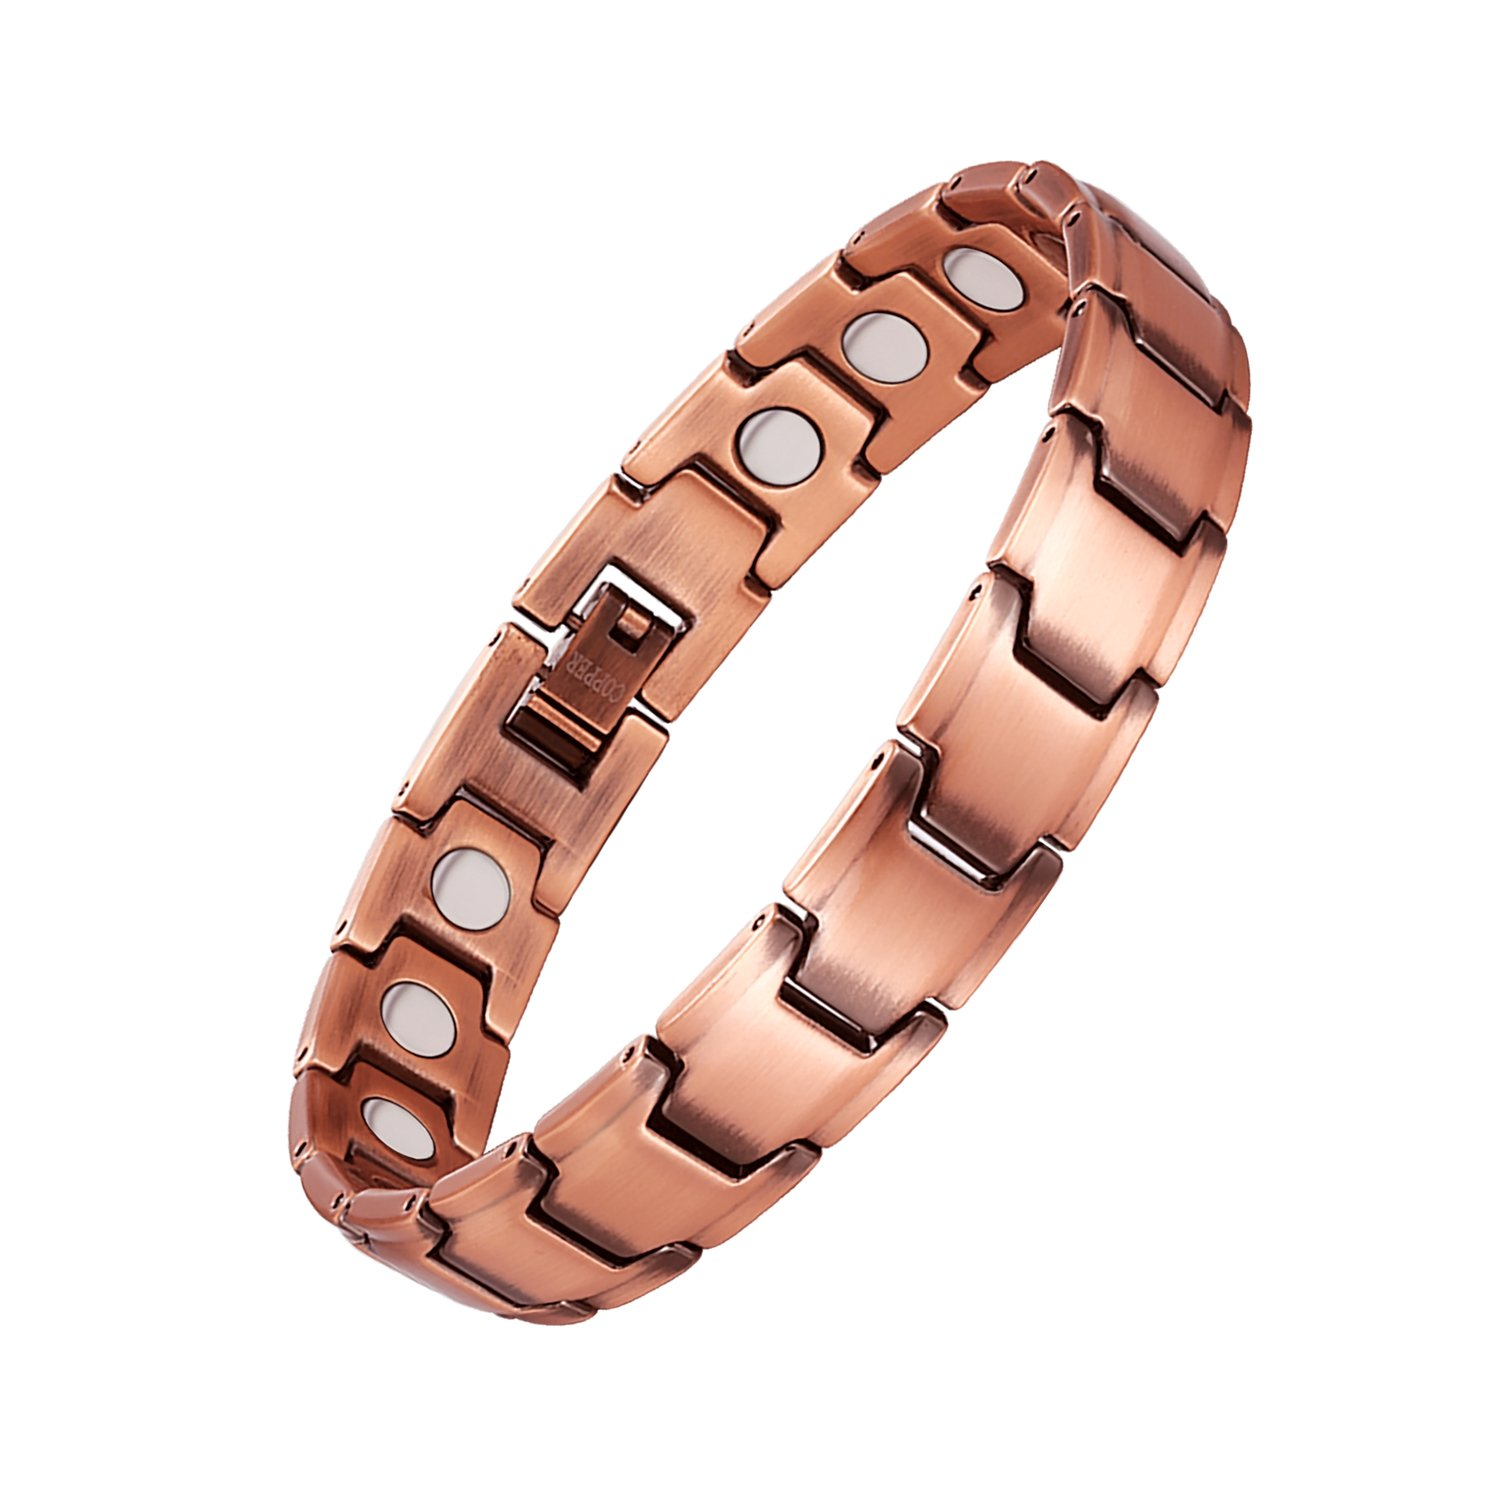 Feraco Men's Copper Bracelet with Strong Magnetic Therapy for Arthritis Pain Relief with Free Removal Tool FBAG-US180604HGE002